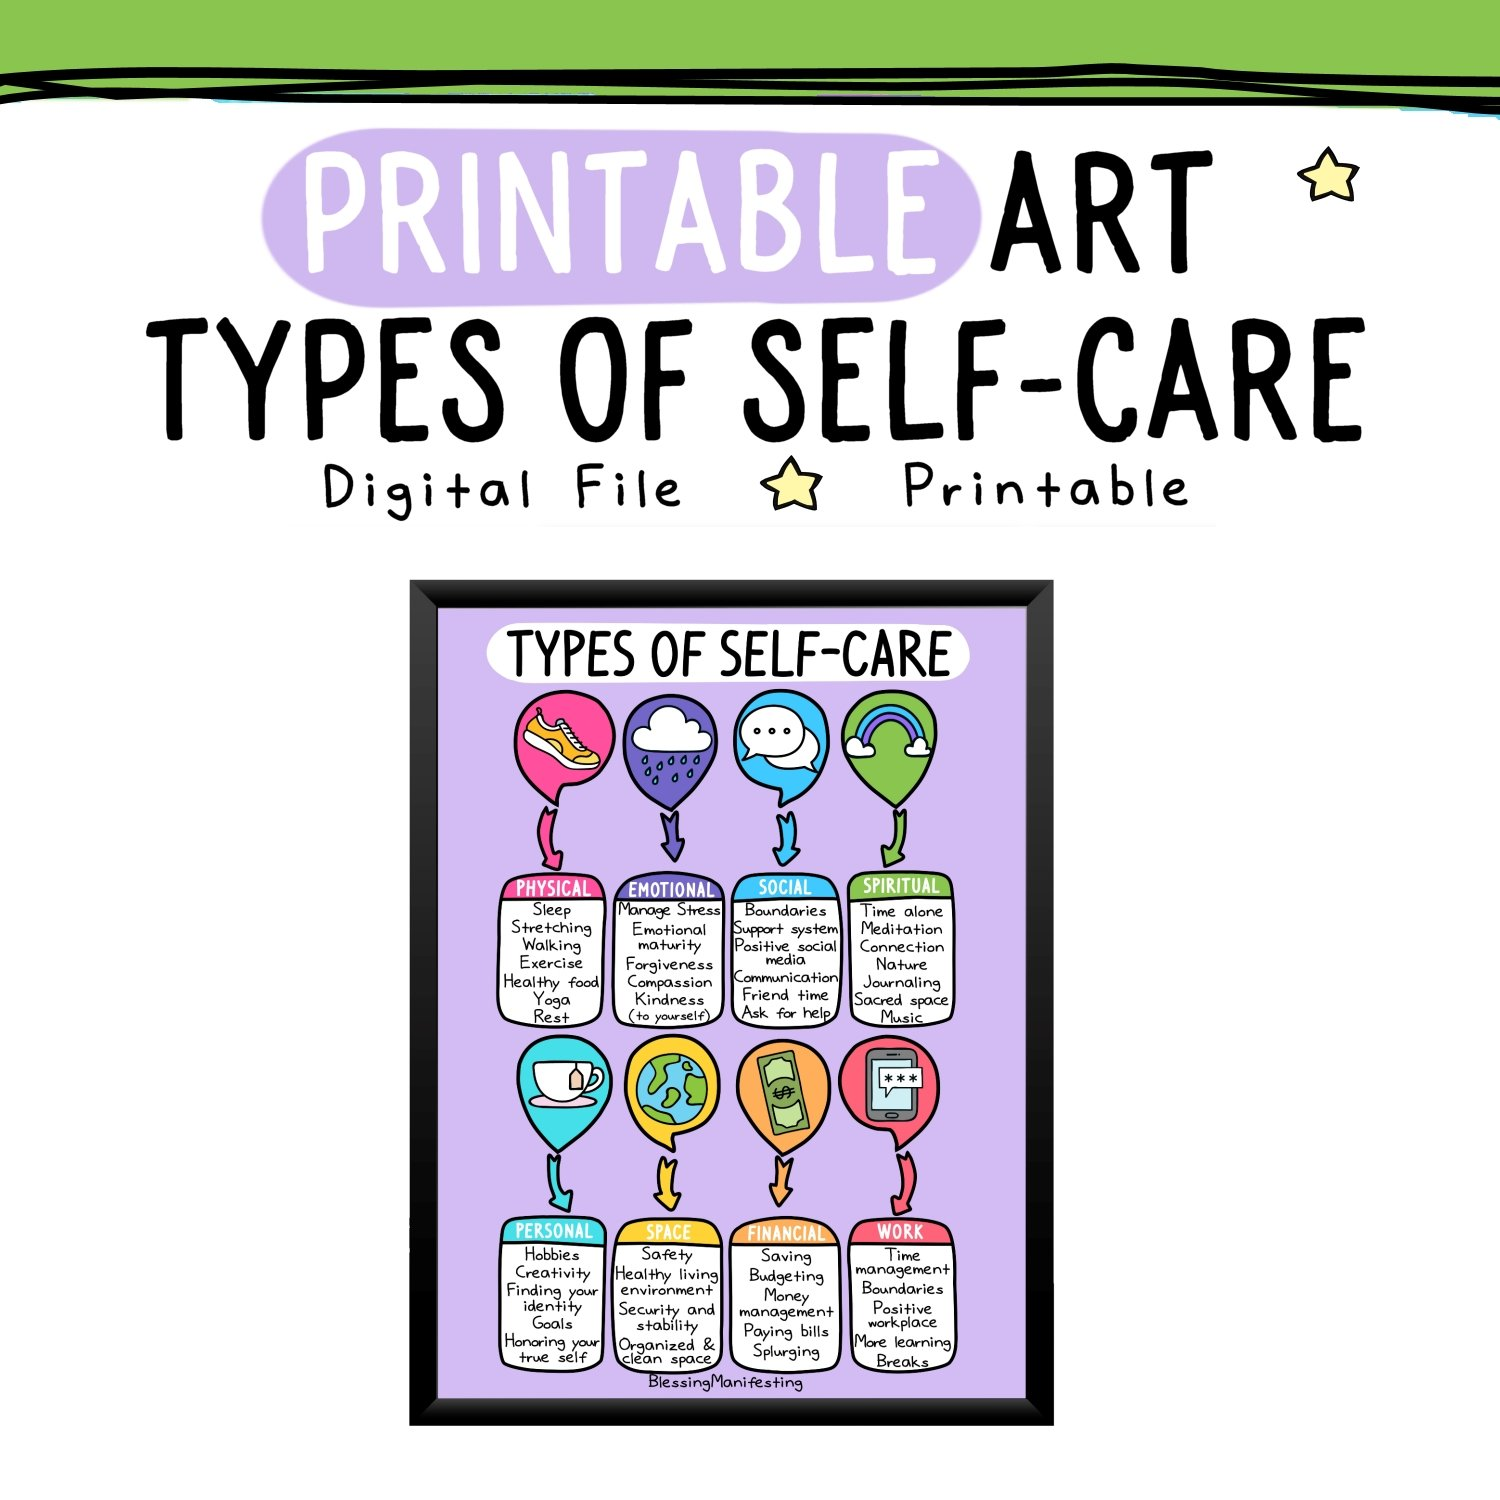 Printable Self Care Art